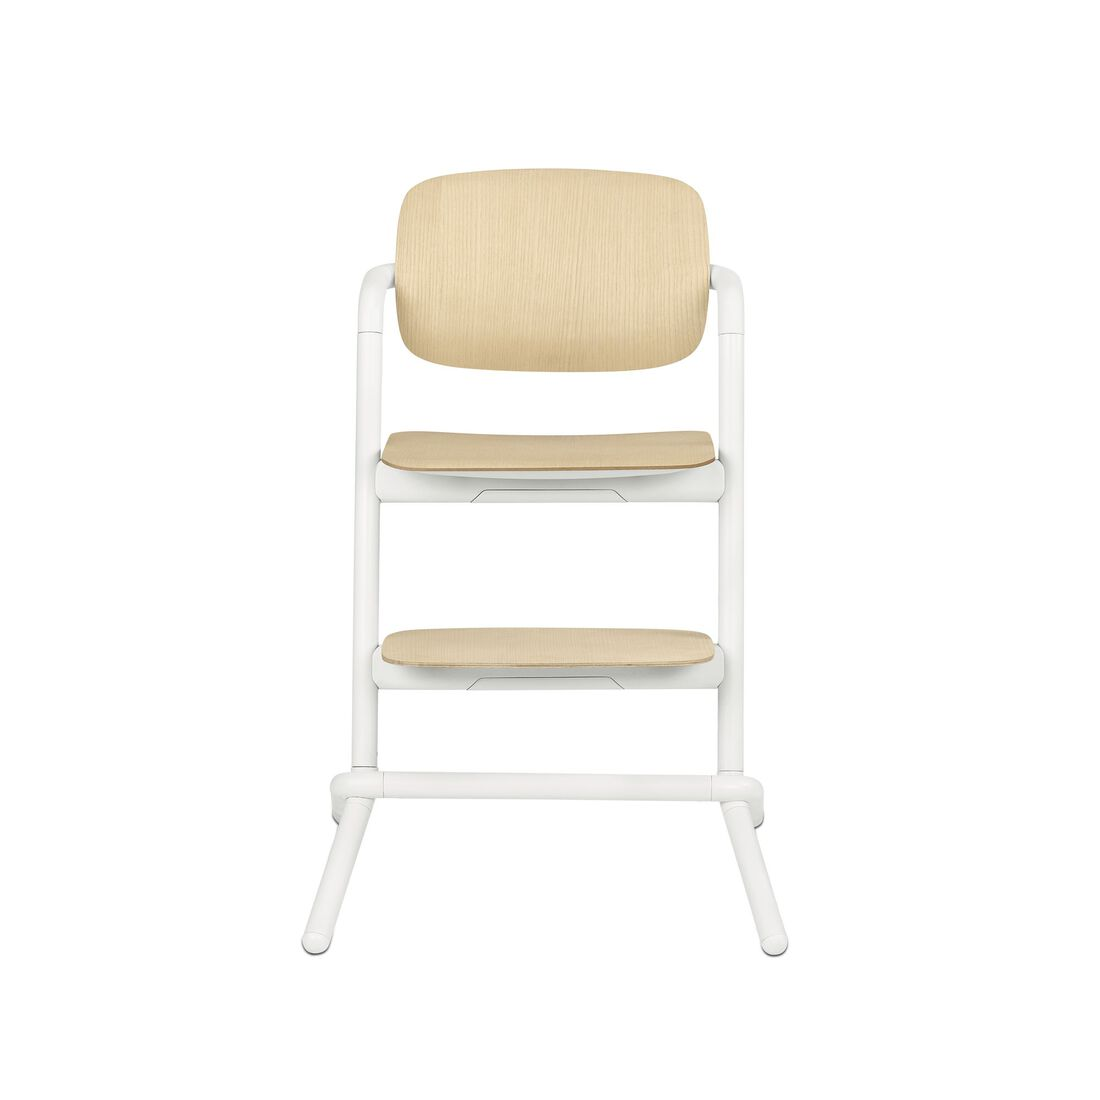 CYBEX Lemo Chair - Porcelaine White (Wood) in Porcelaine White (Wood) large image number 2